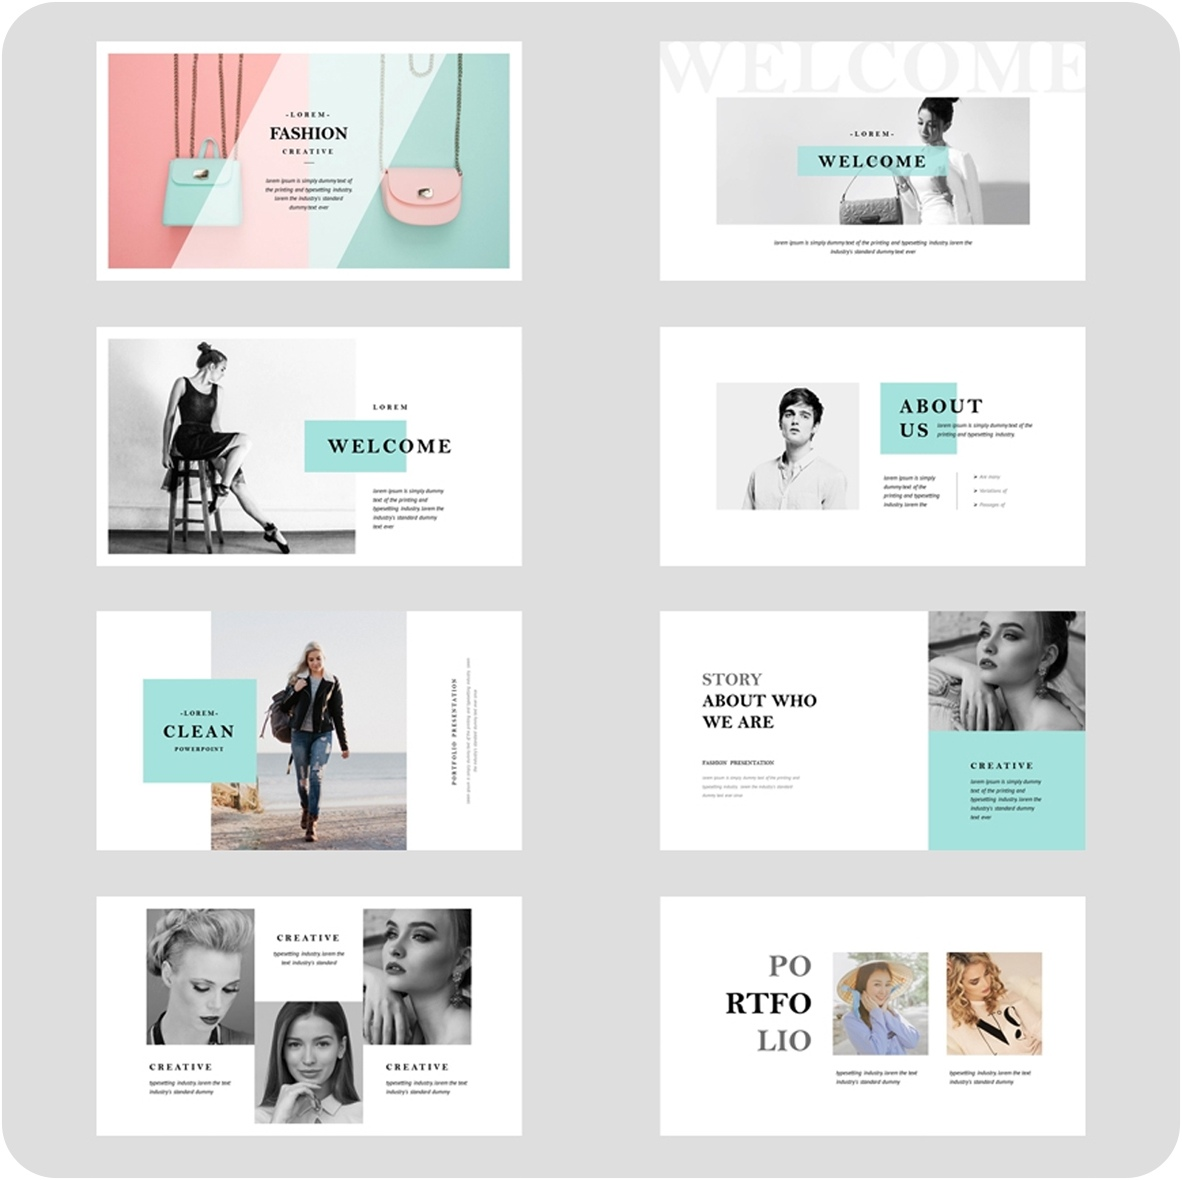 Fashion Powerpoint Presentation Template Free Download